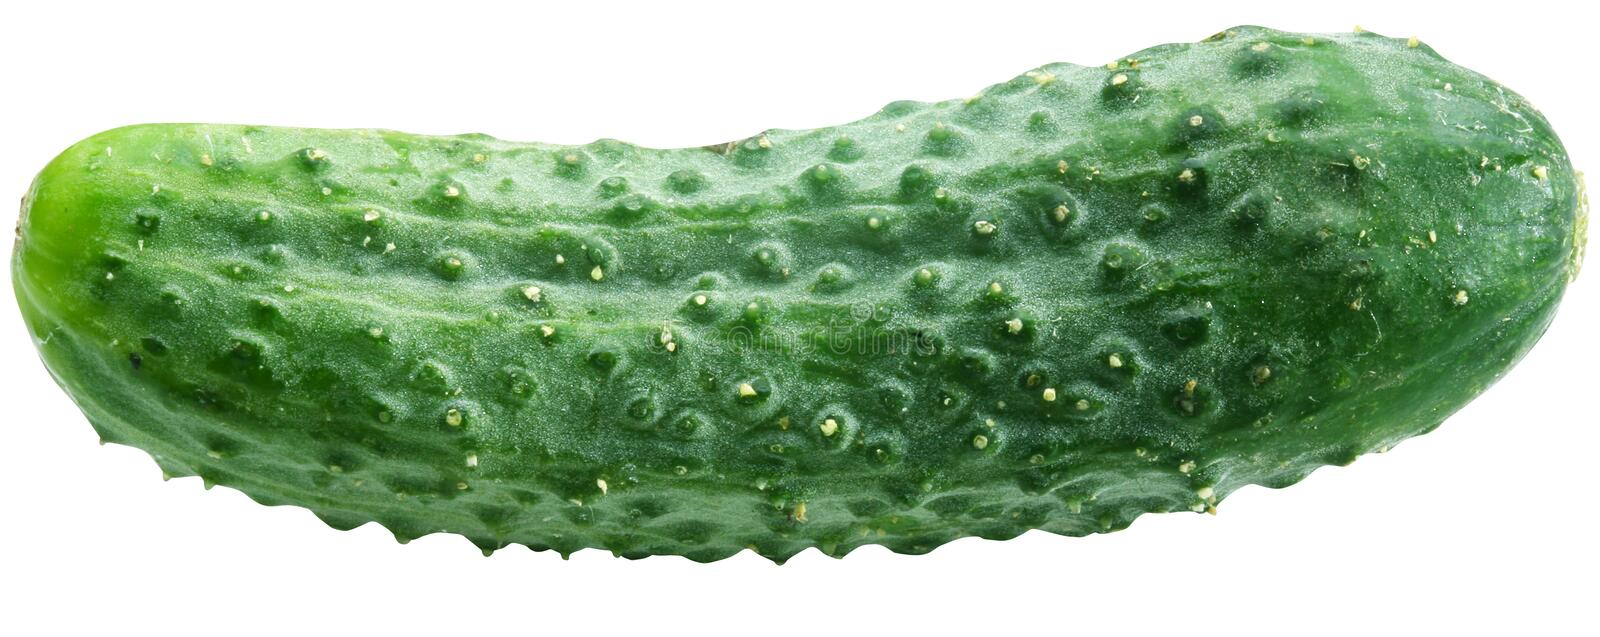 Download Image Of Cucumber On White Background. Stock Photo - Image: 21227722